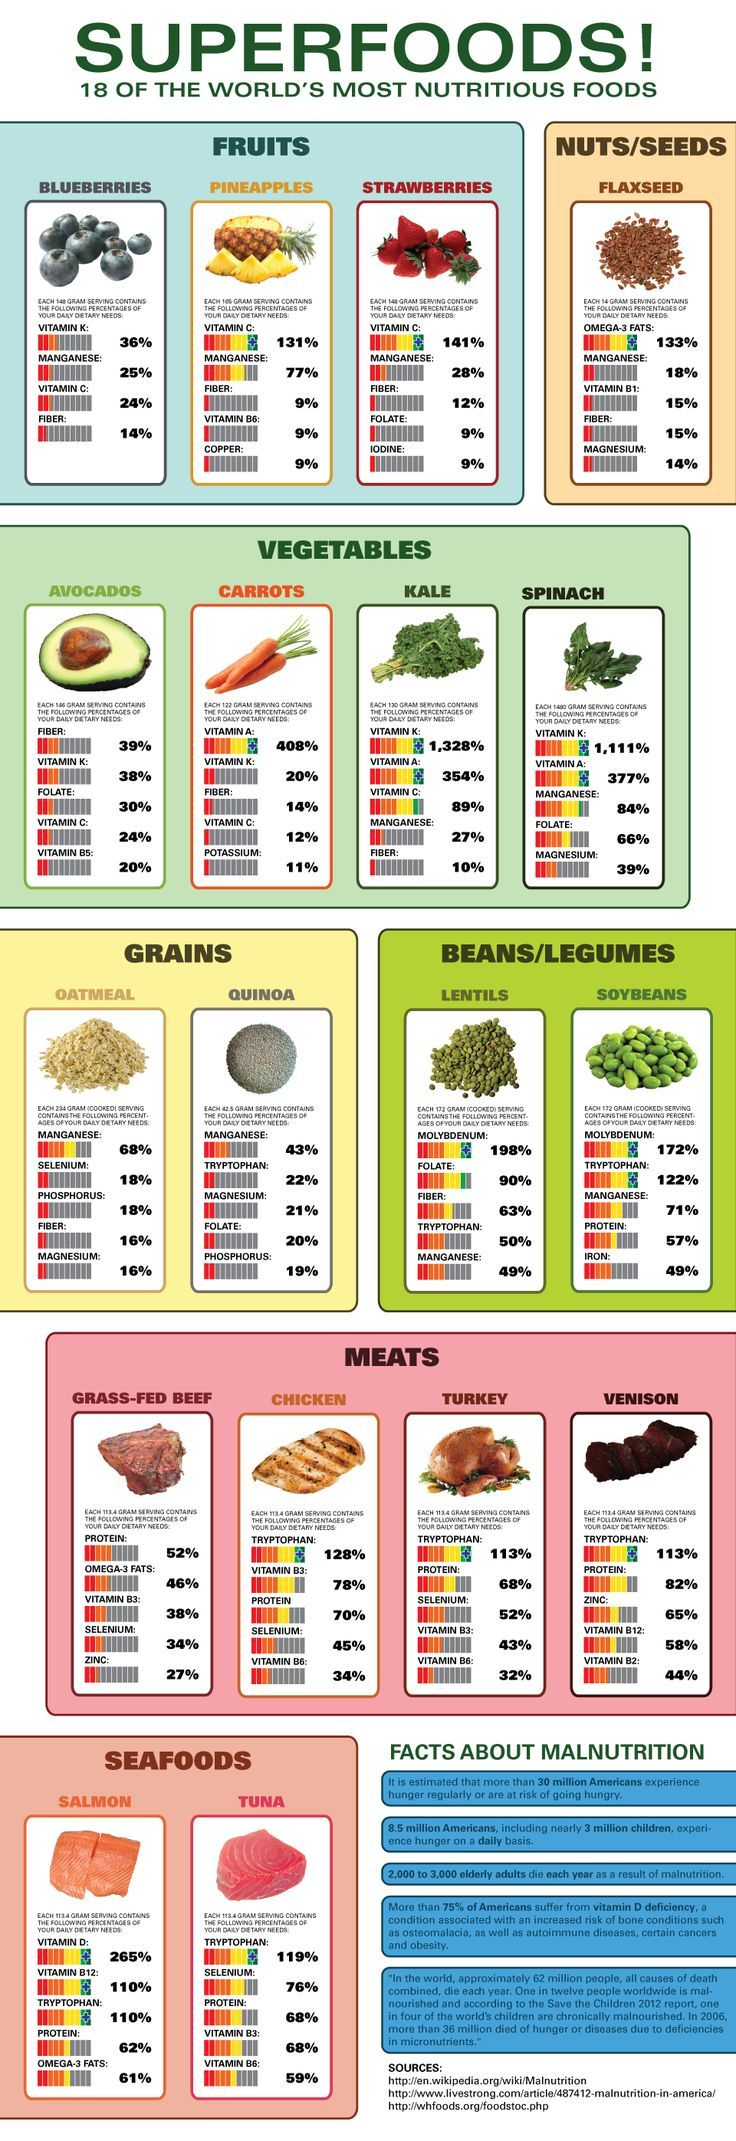 superfoods___infographic_by_tdcashdesign-d647nm1.png 960×2,793 pixels | See more about Super Foods, Food and The World. Photos from the sit...